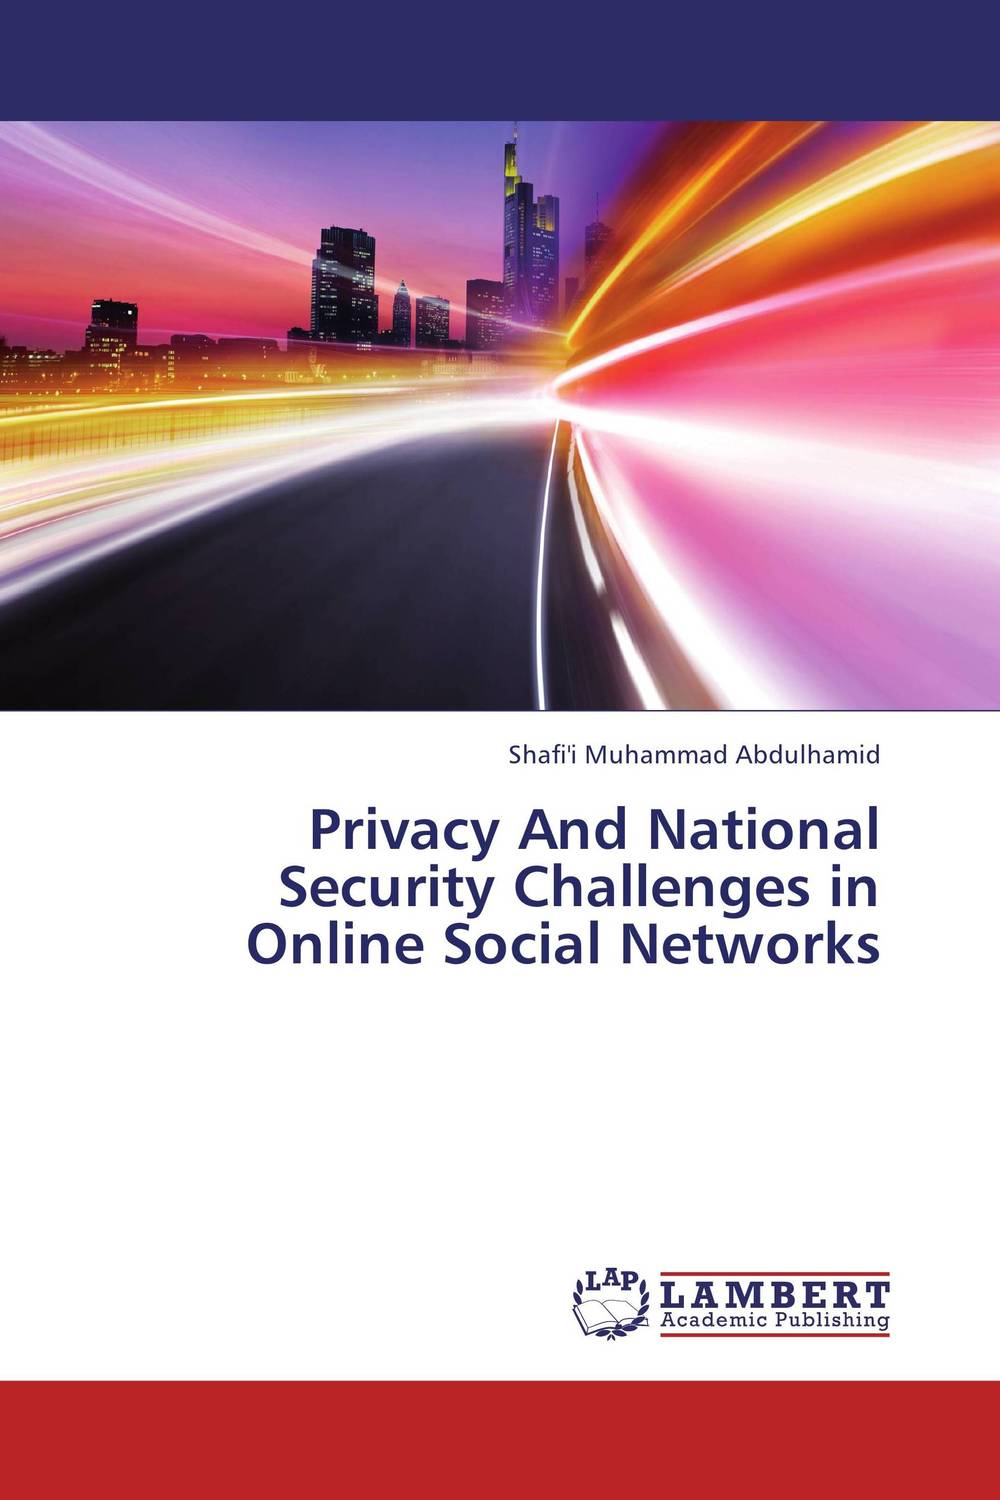 Privacy And National Security Challenges in Online Social Networks social networking mindset and education